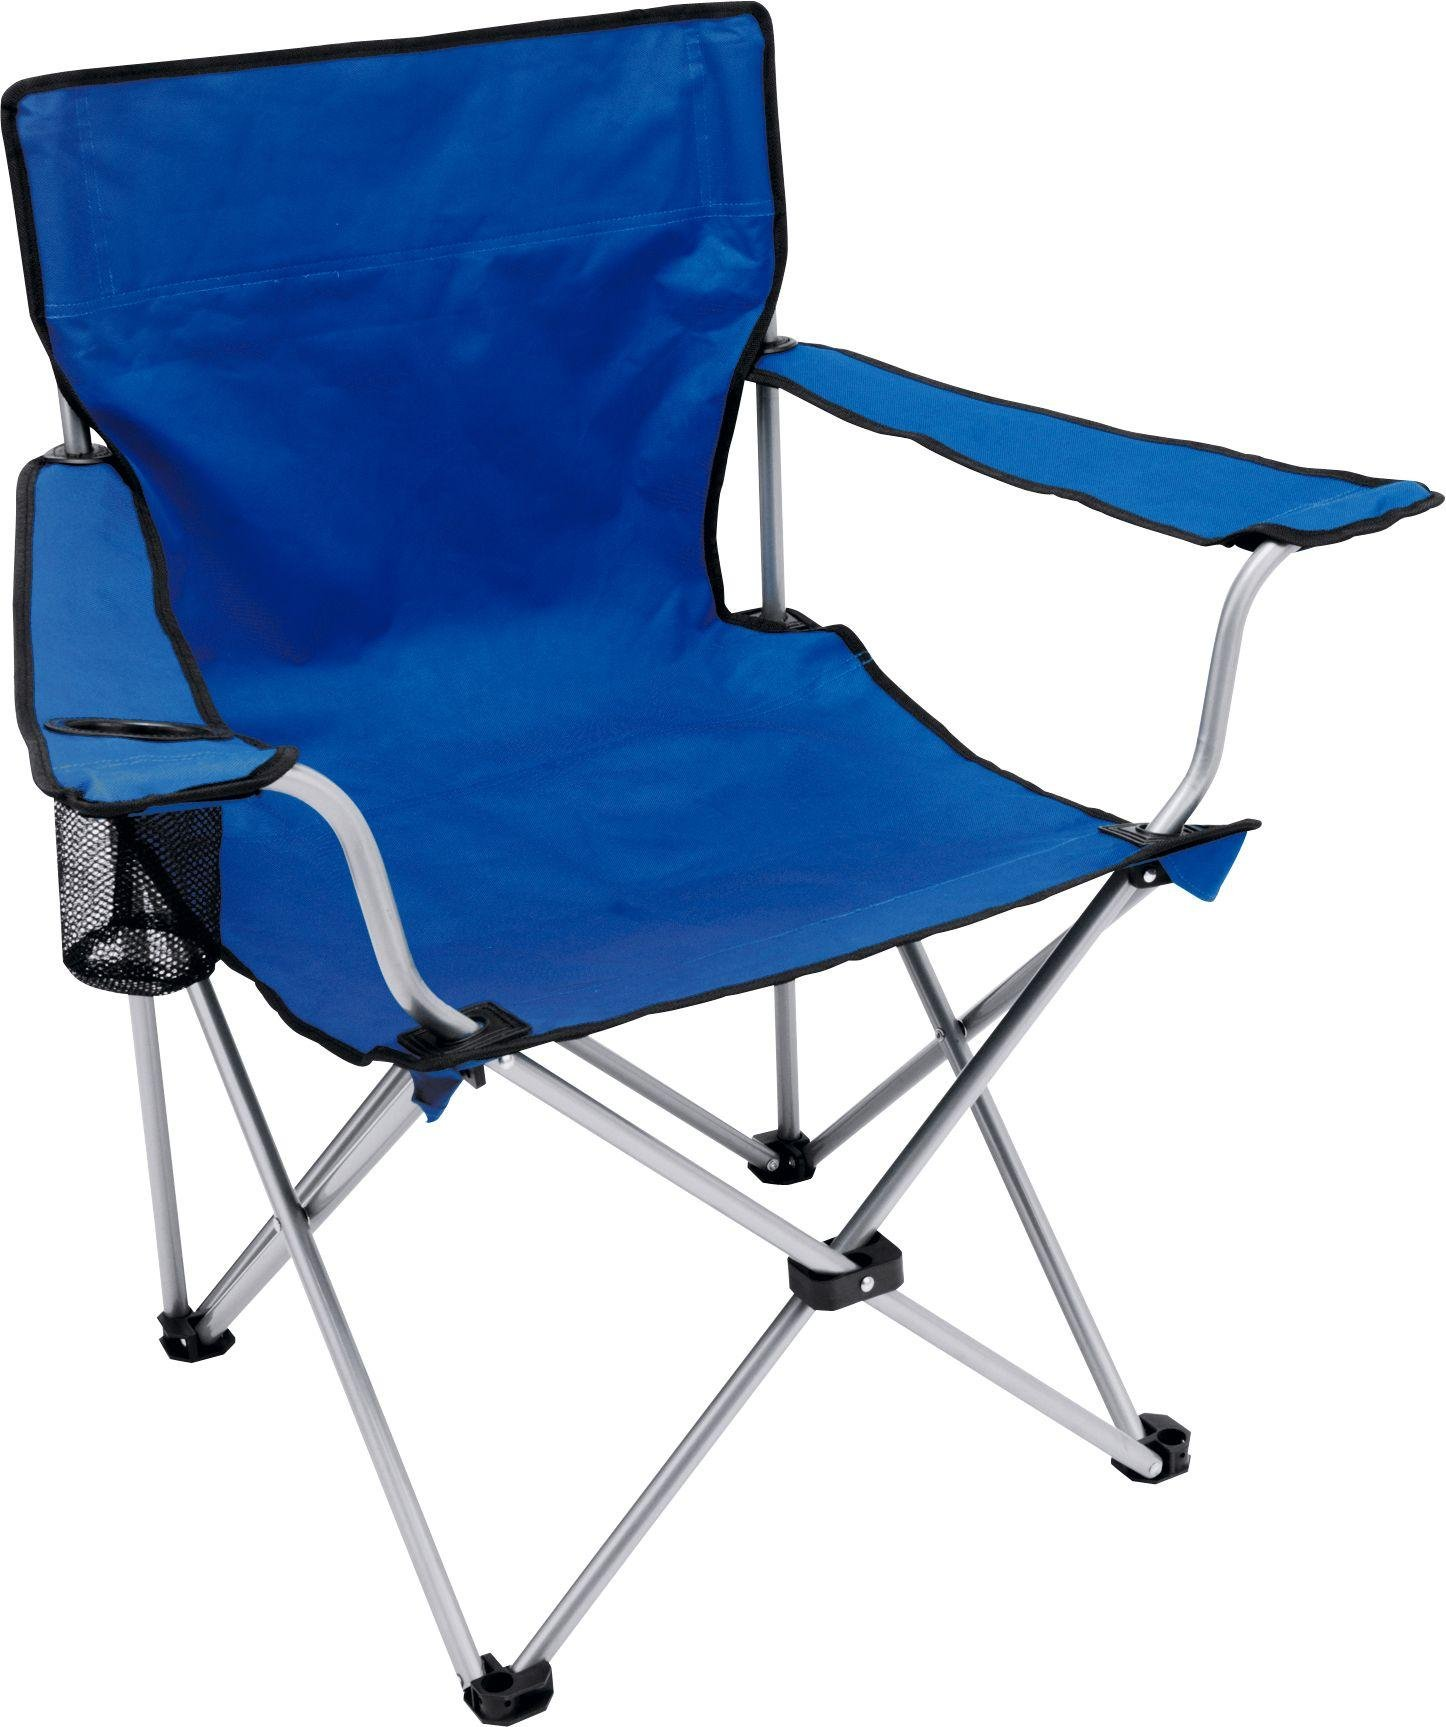 Buy Steel Folding Camping Chair | Camping chairs | Argos